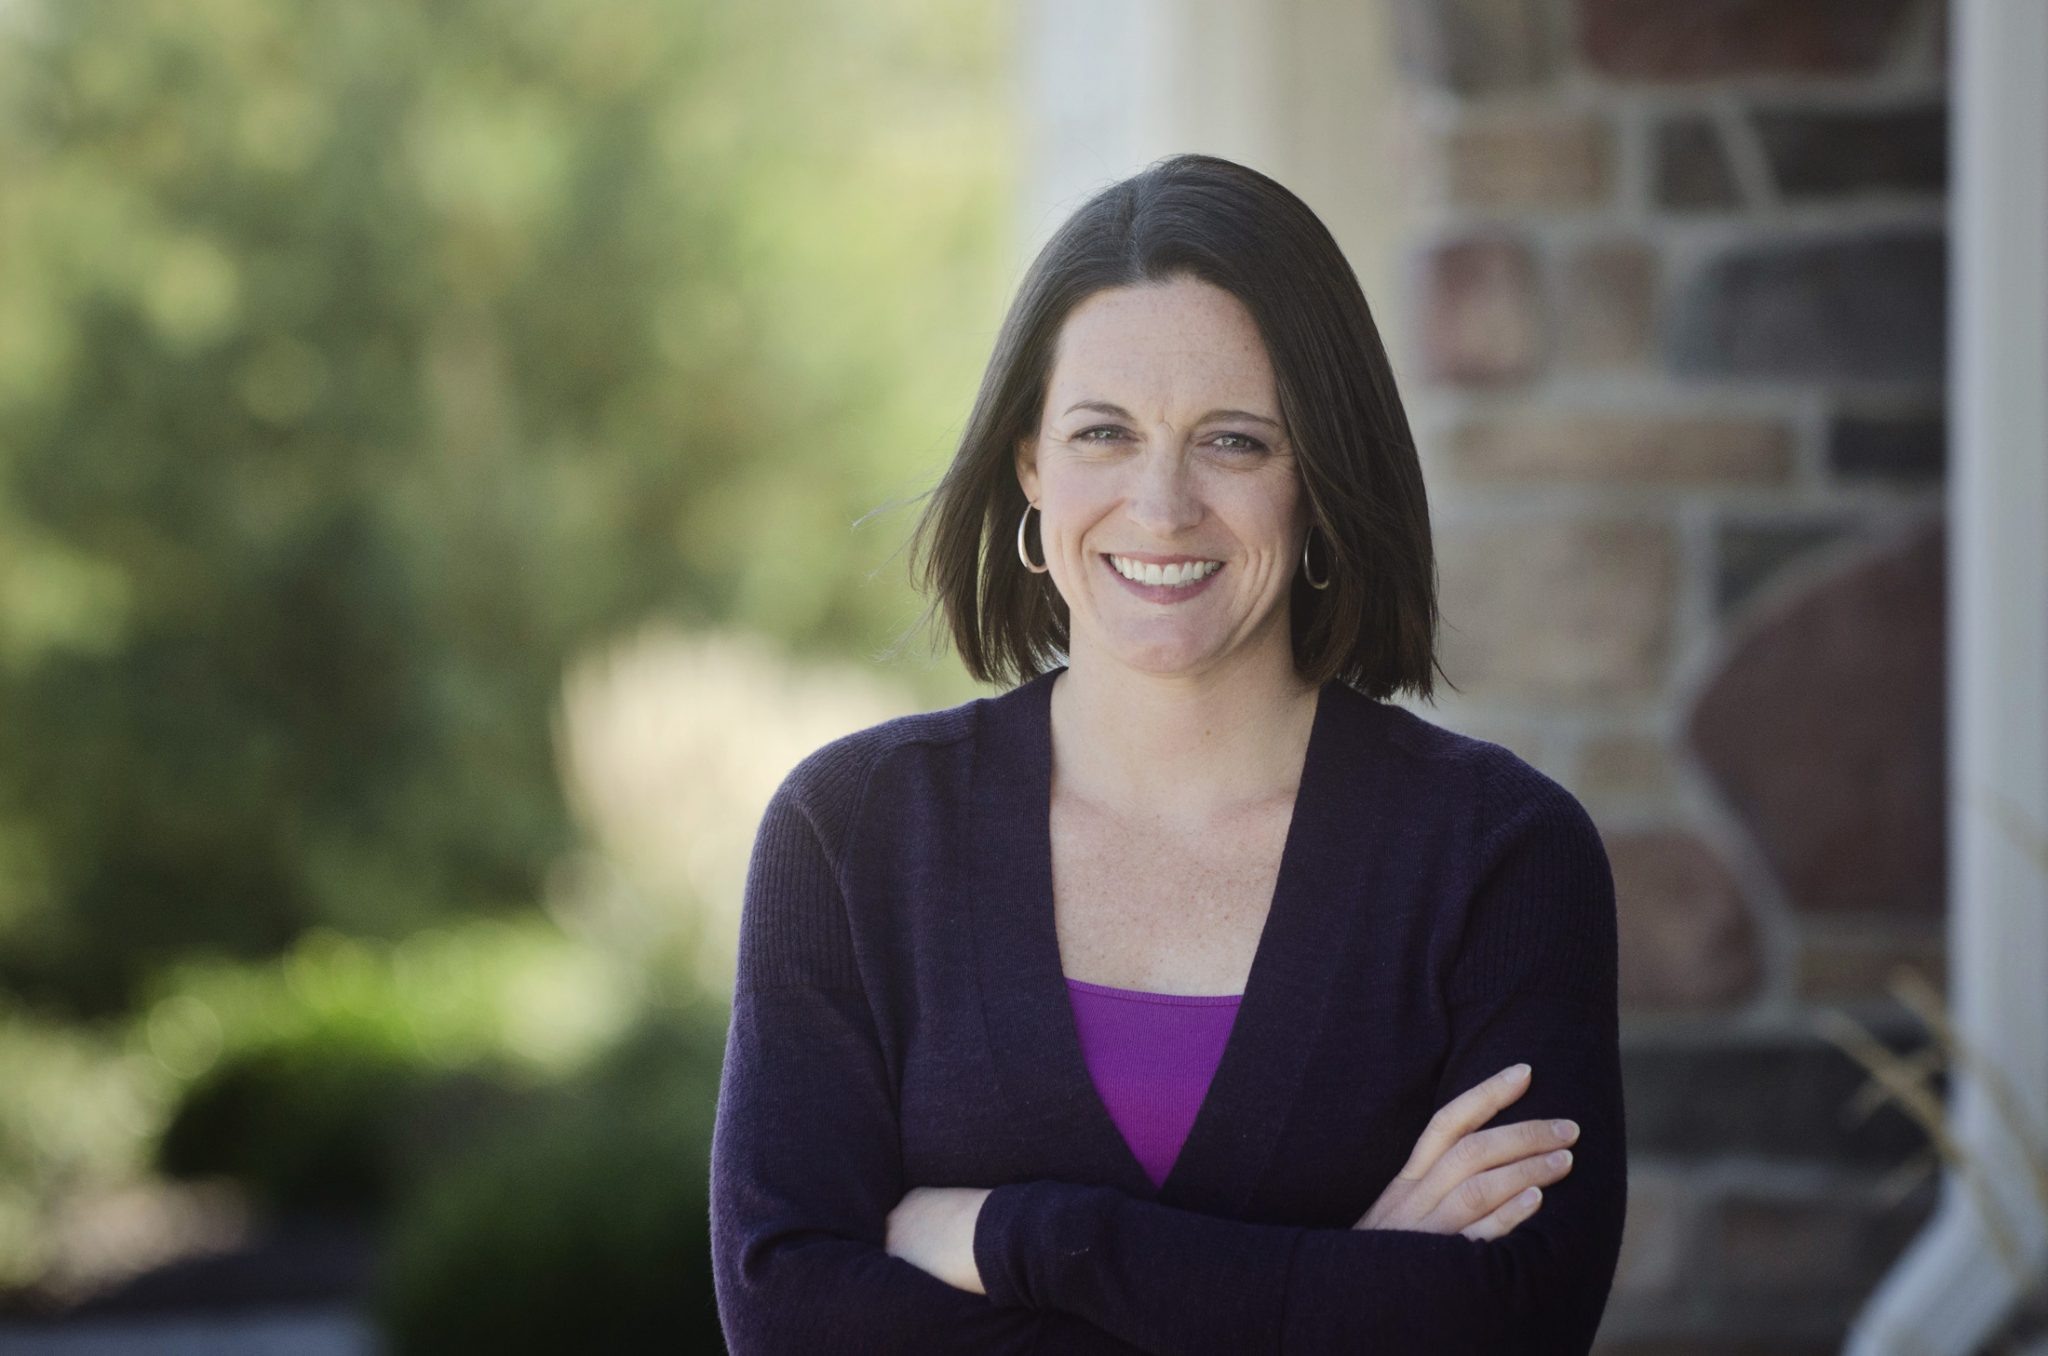 Jennie Clements, Administrator at The Water's Edge